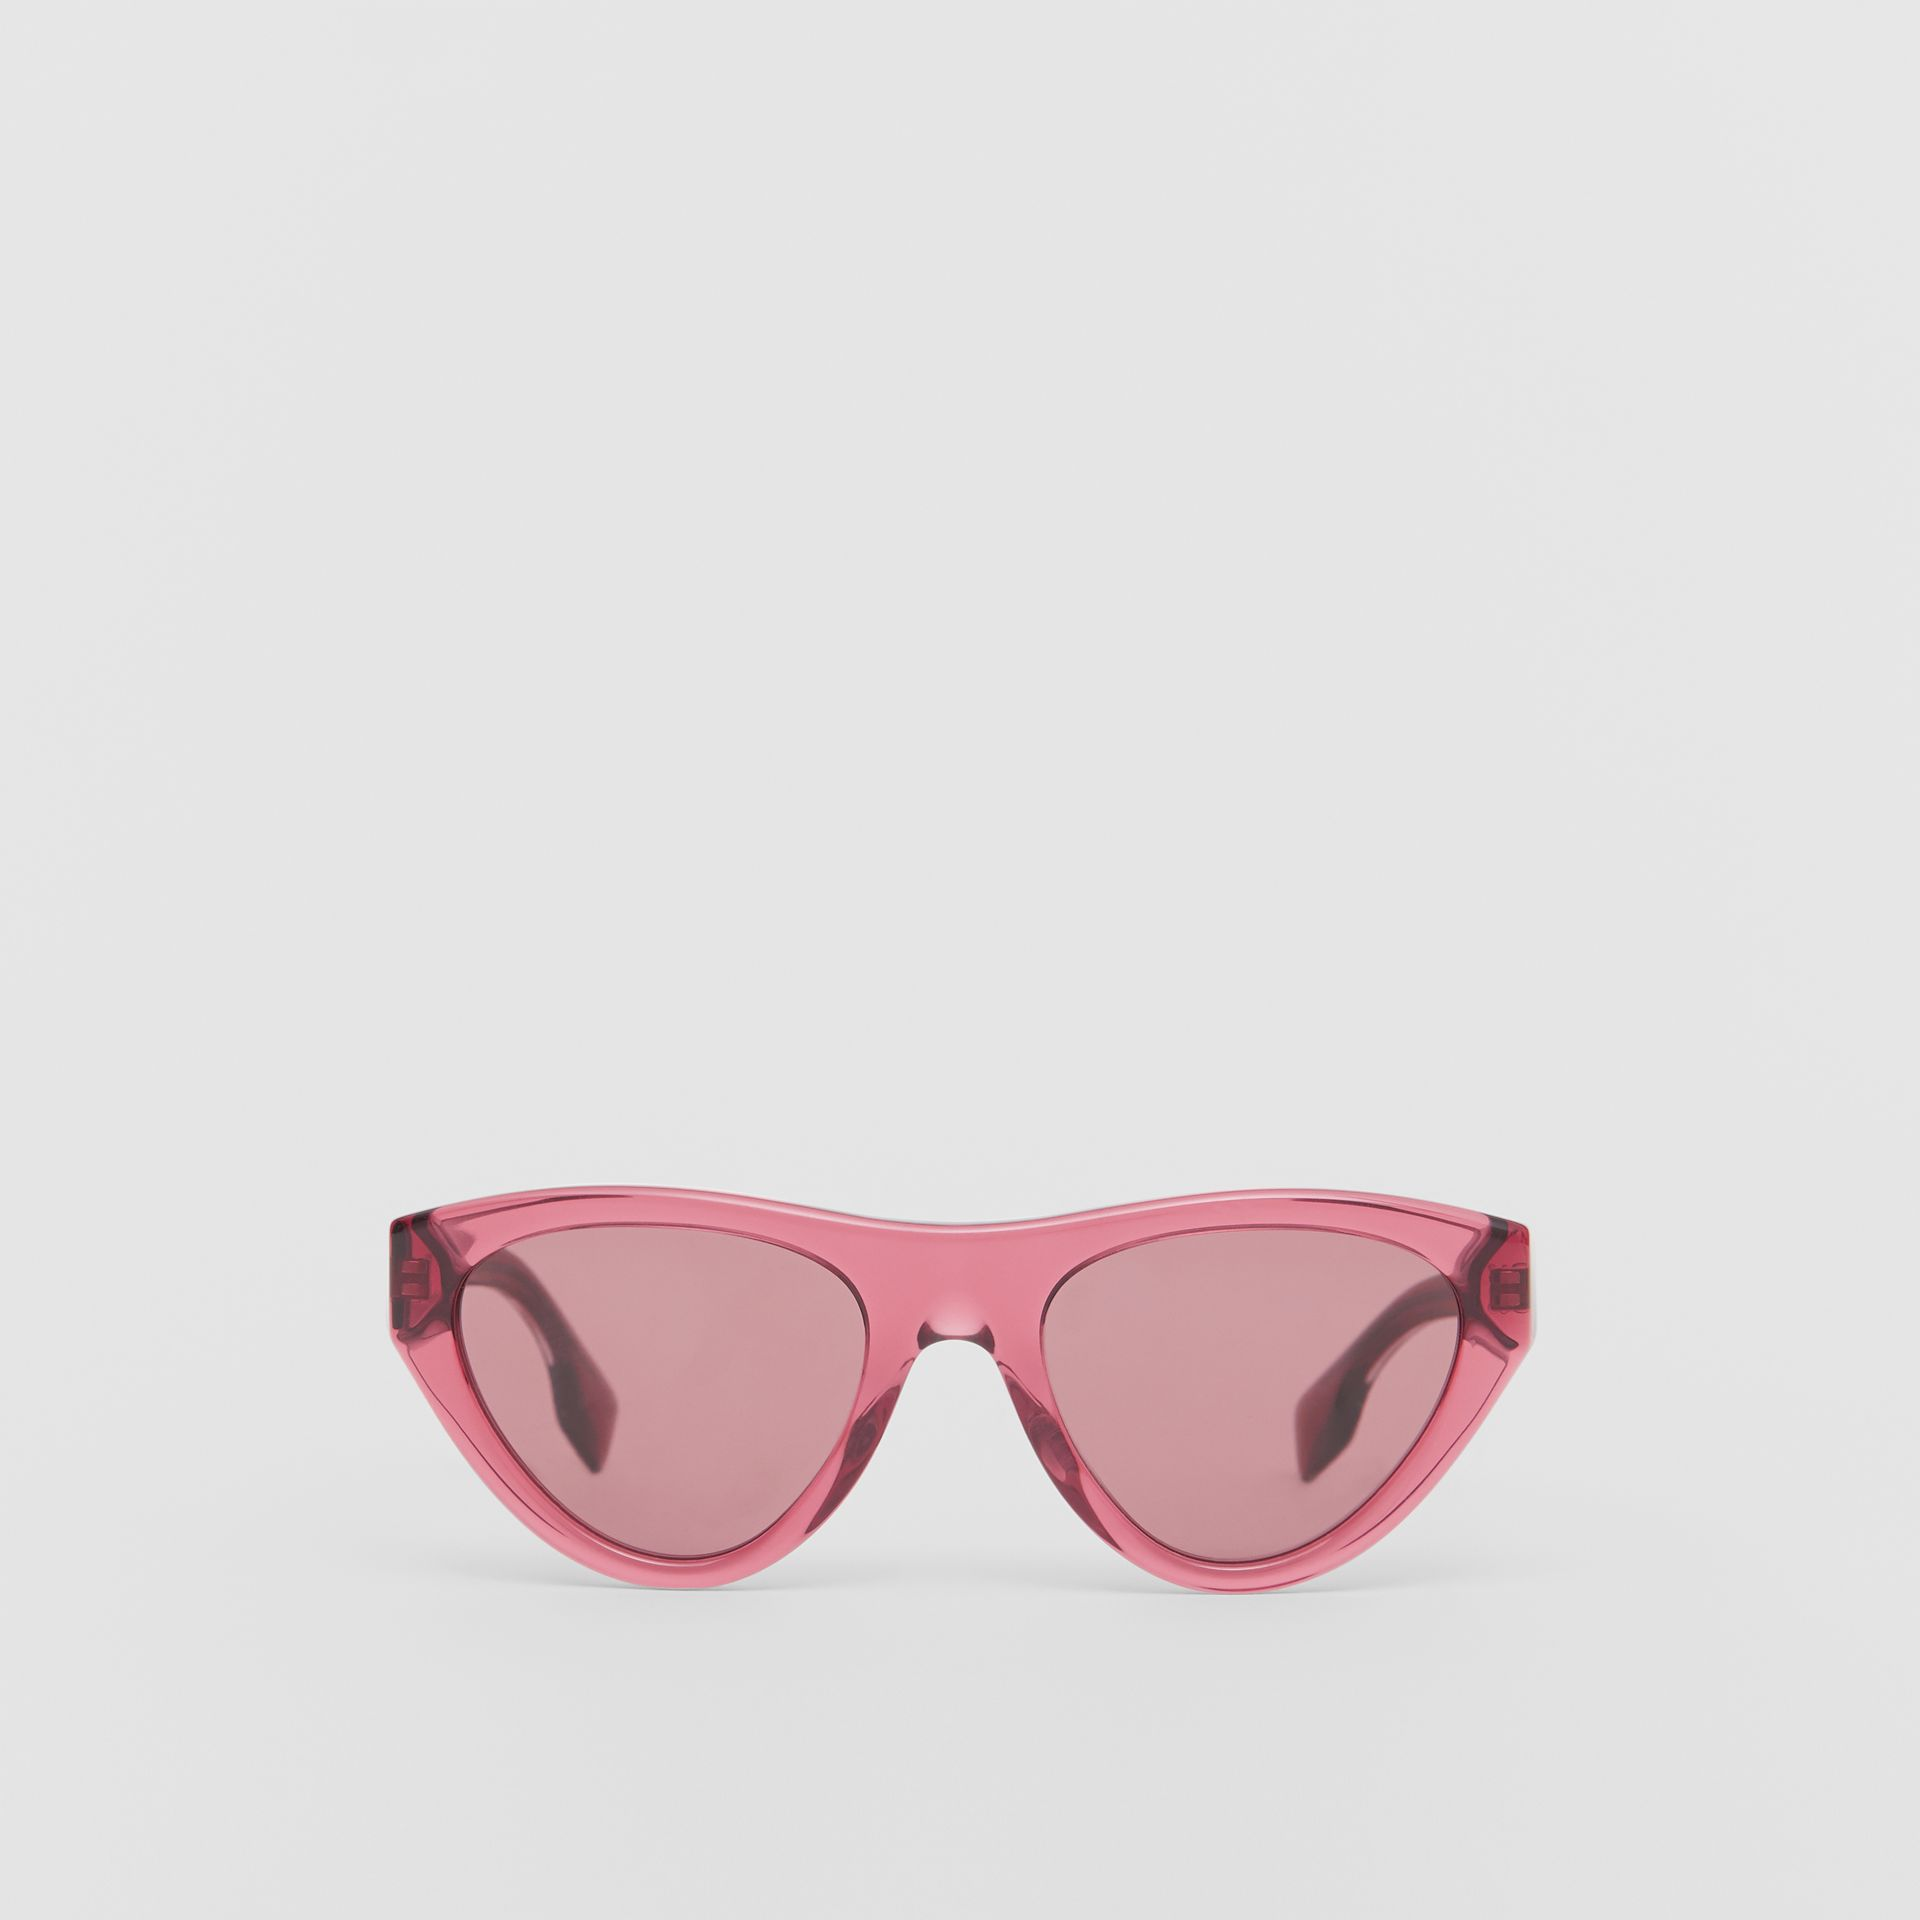 Triangular Frame Sunglasses in Cranberry - Women | Burberry - gallery image 0